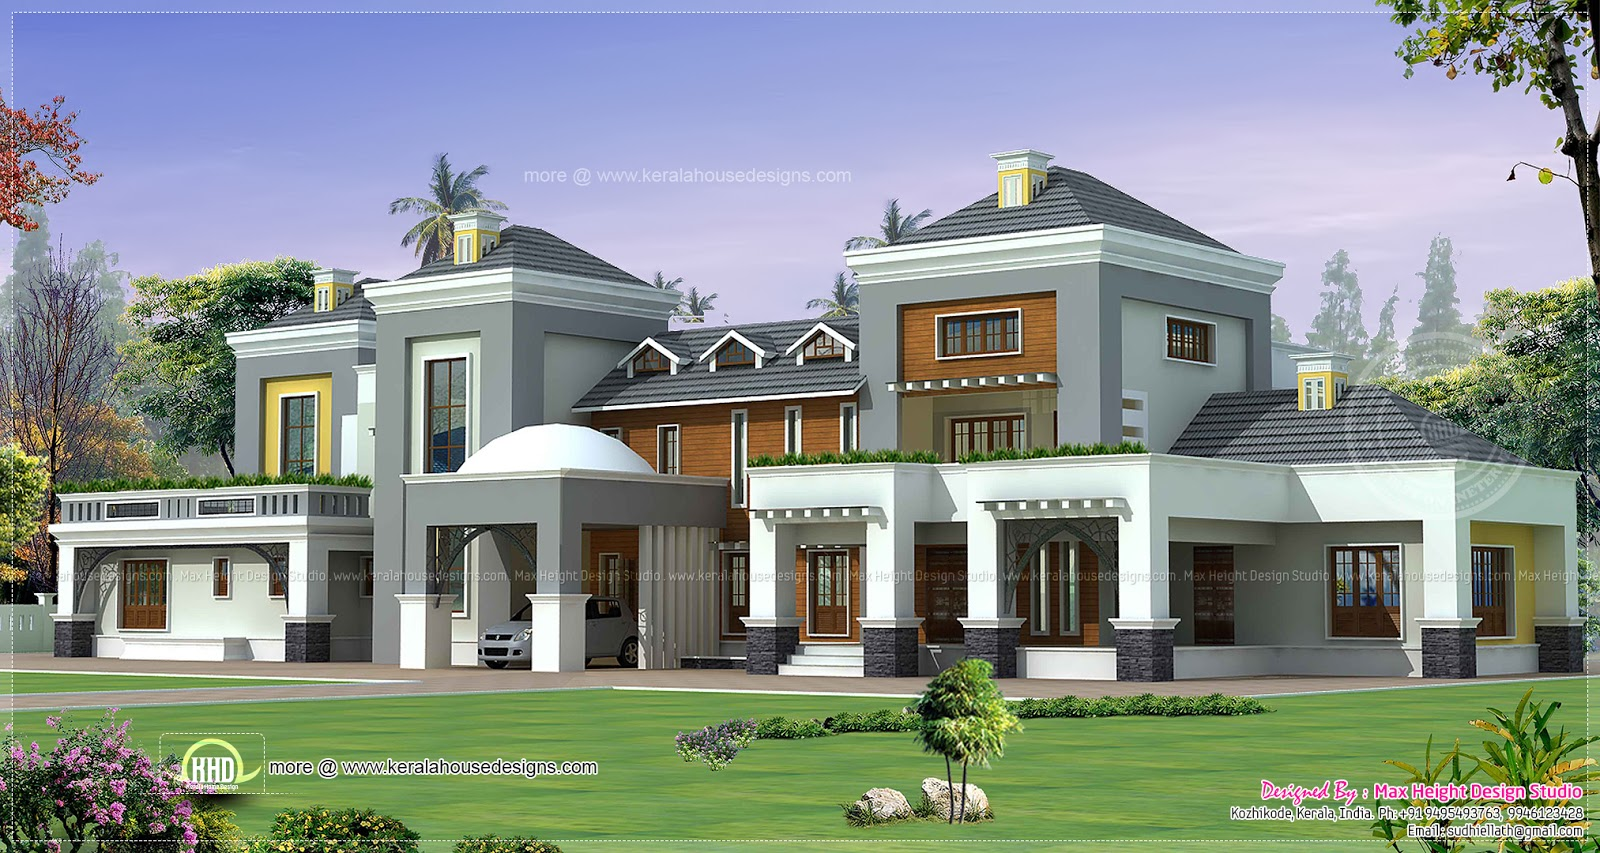 Luxury house plan with photo kerala home design and for New luxury home plans